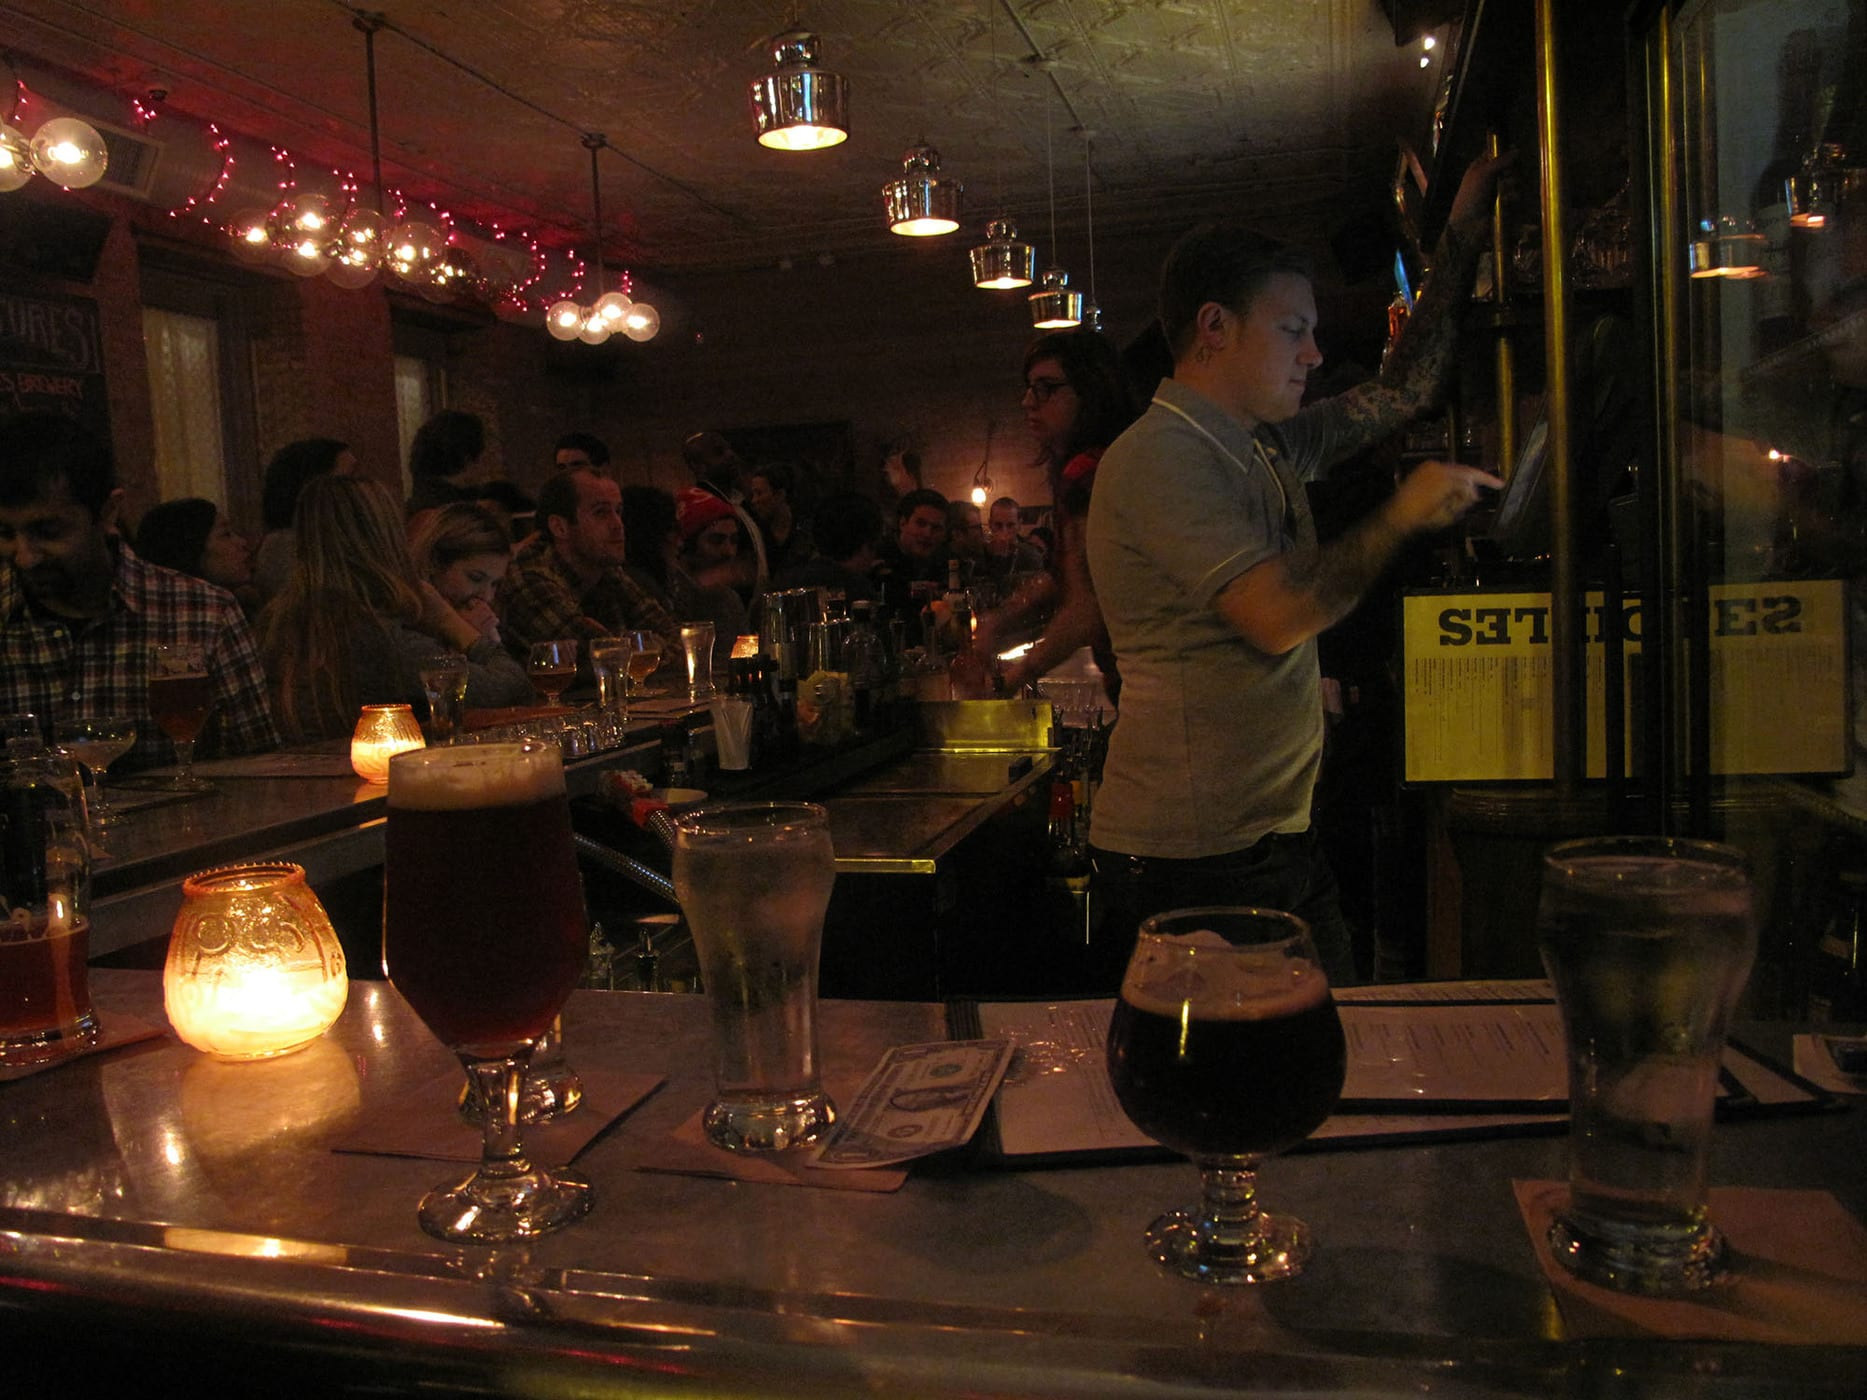 Beers at Bangers and Lace in Chicago, Illinois